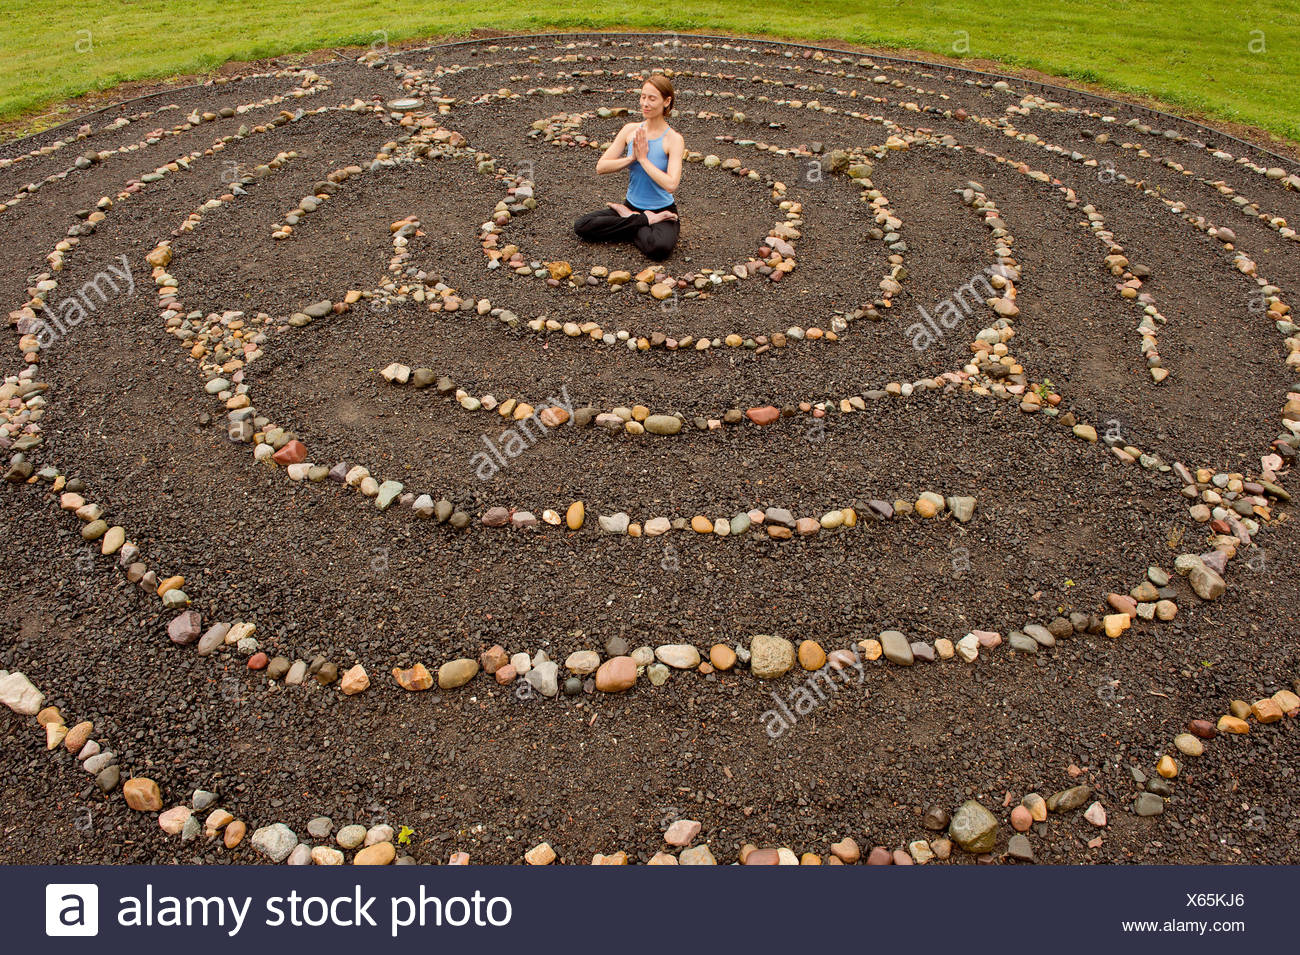 Woman meditating in stone labyrinth - Stock Image